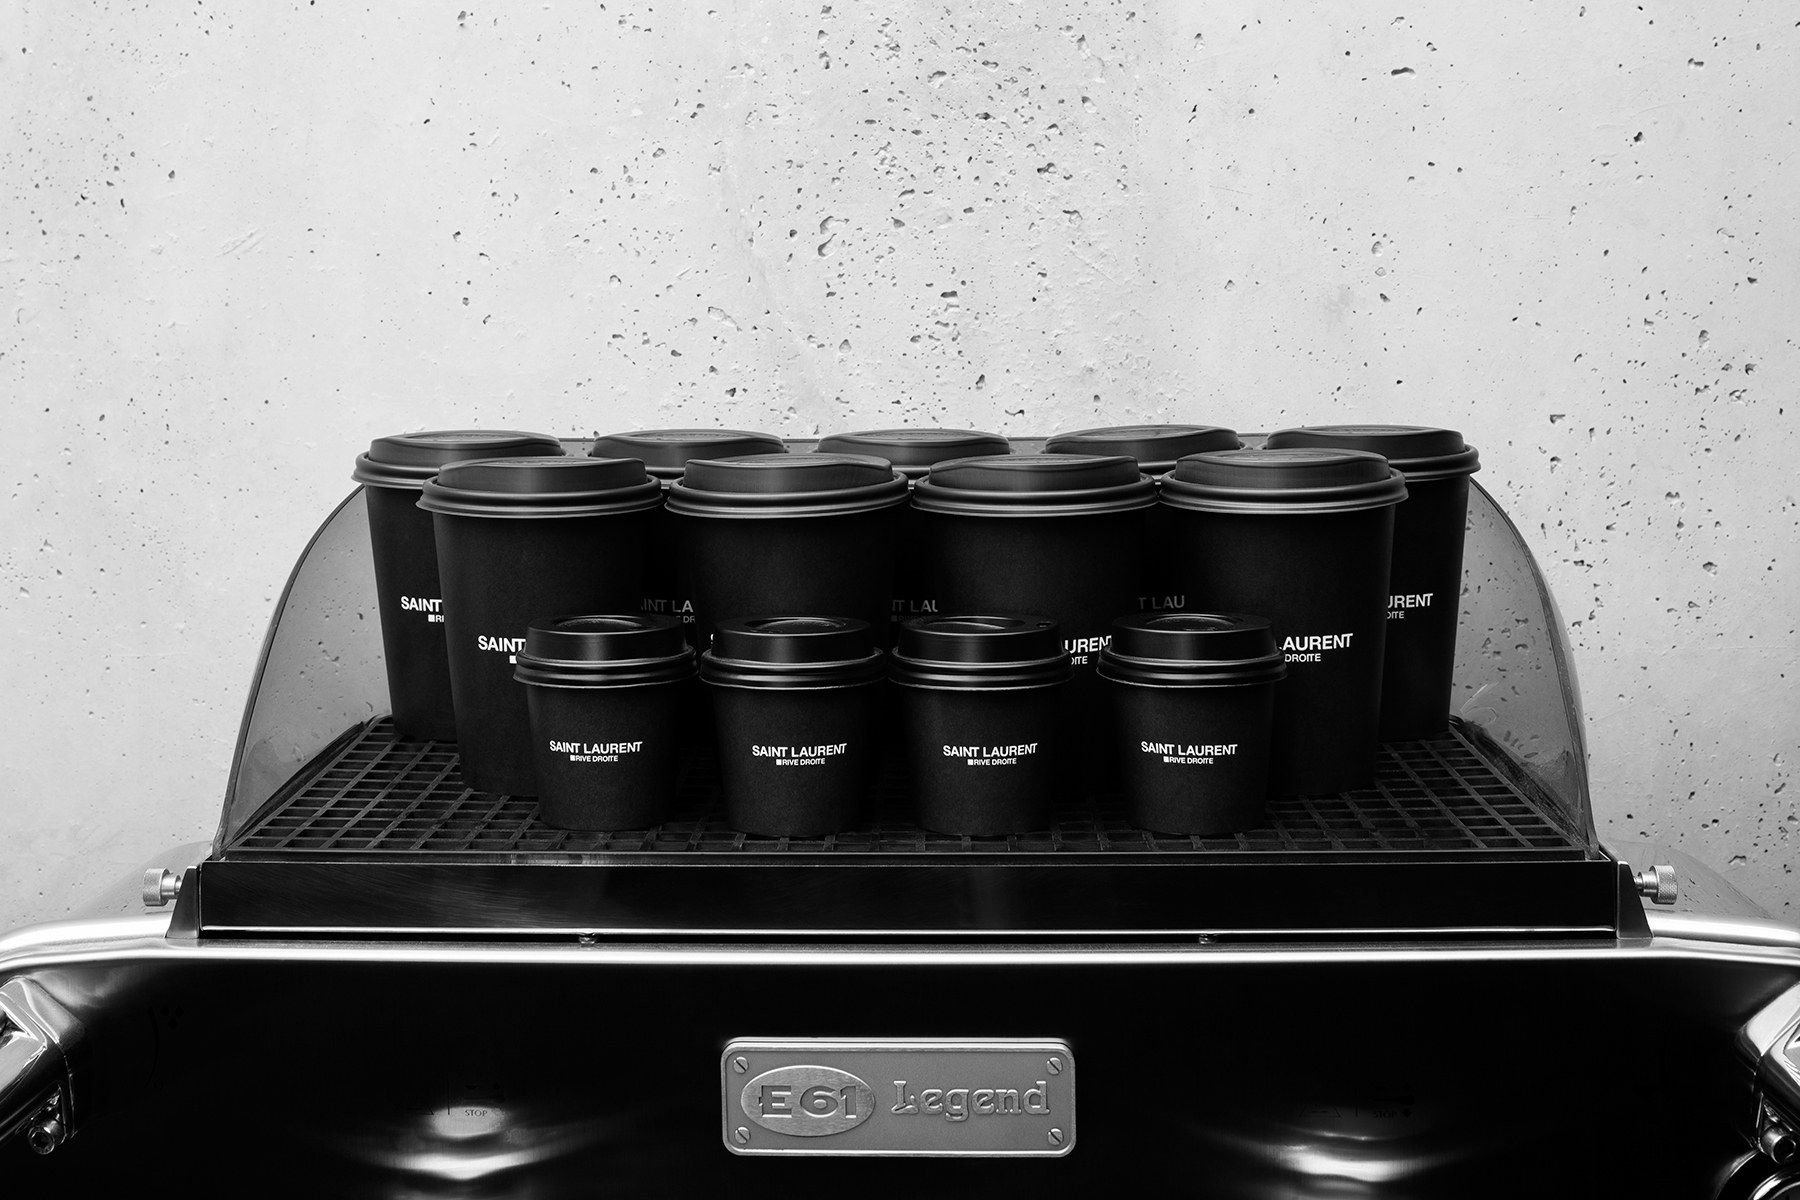 Saint Laurent Will Open Its First Coffee Shop In Paris Ahead of Paris Fashion Week